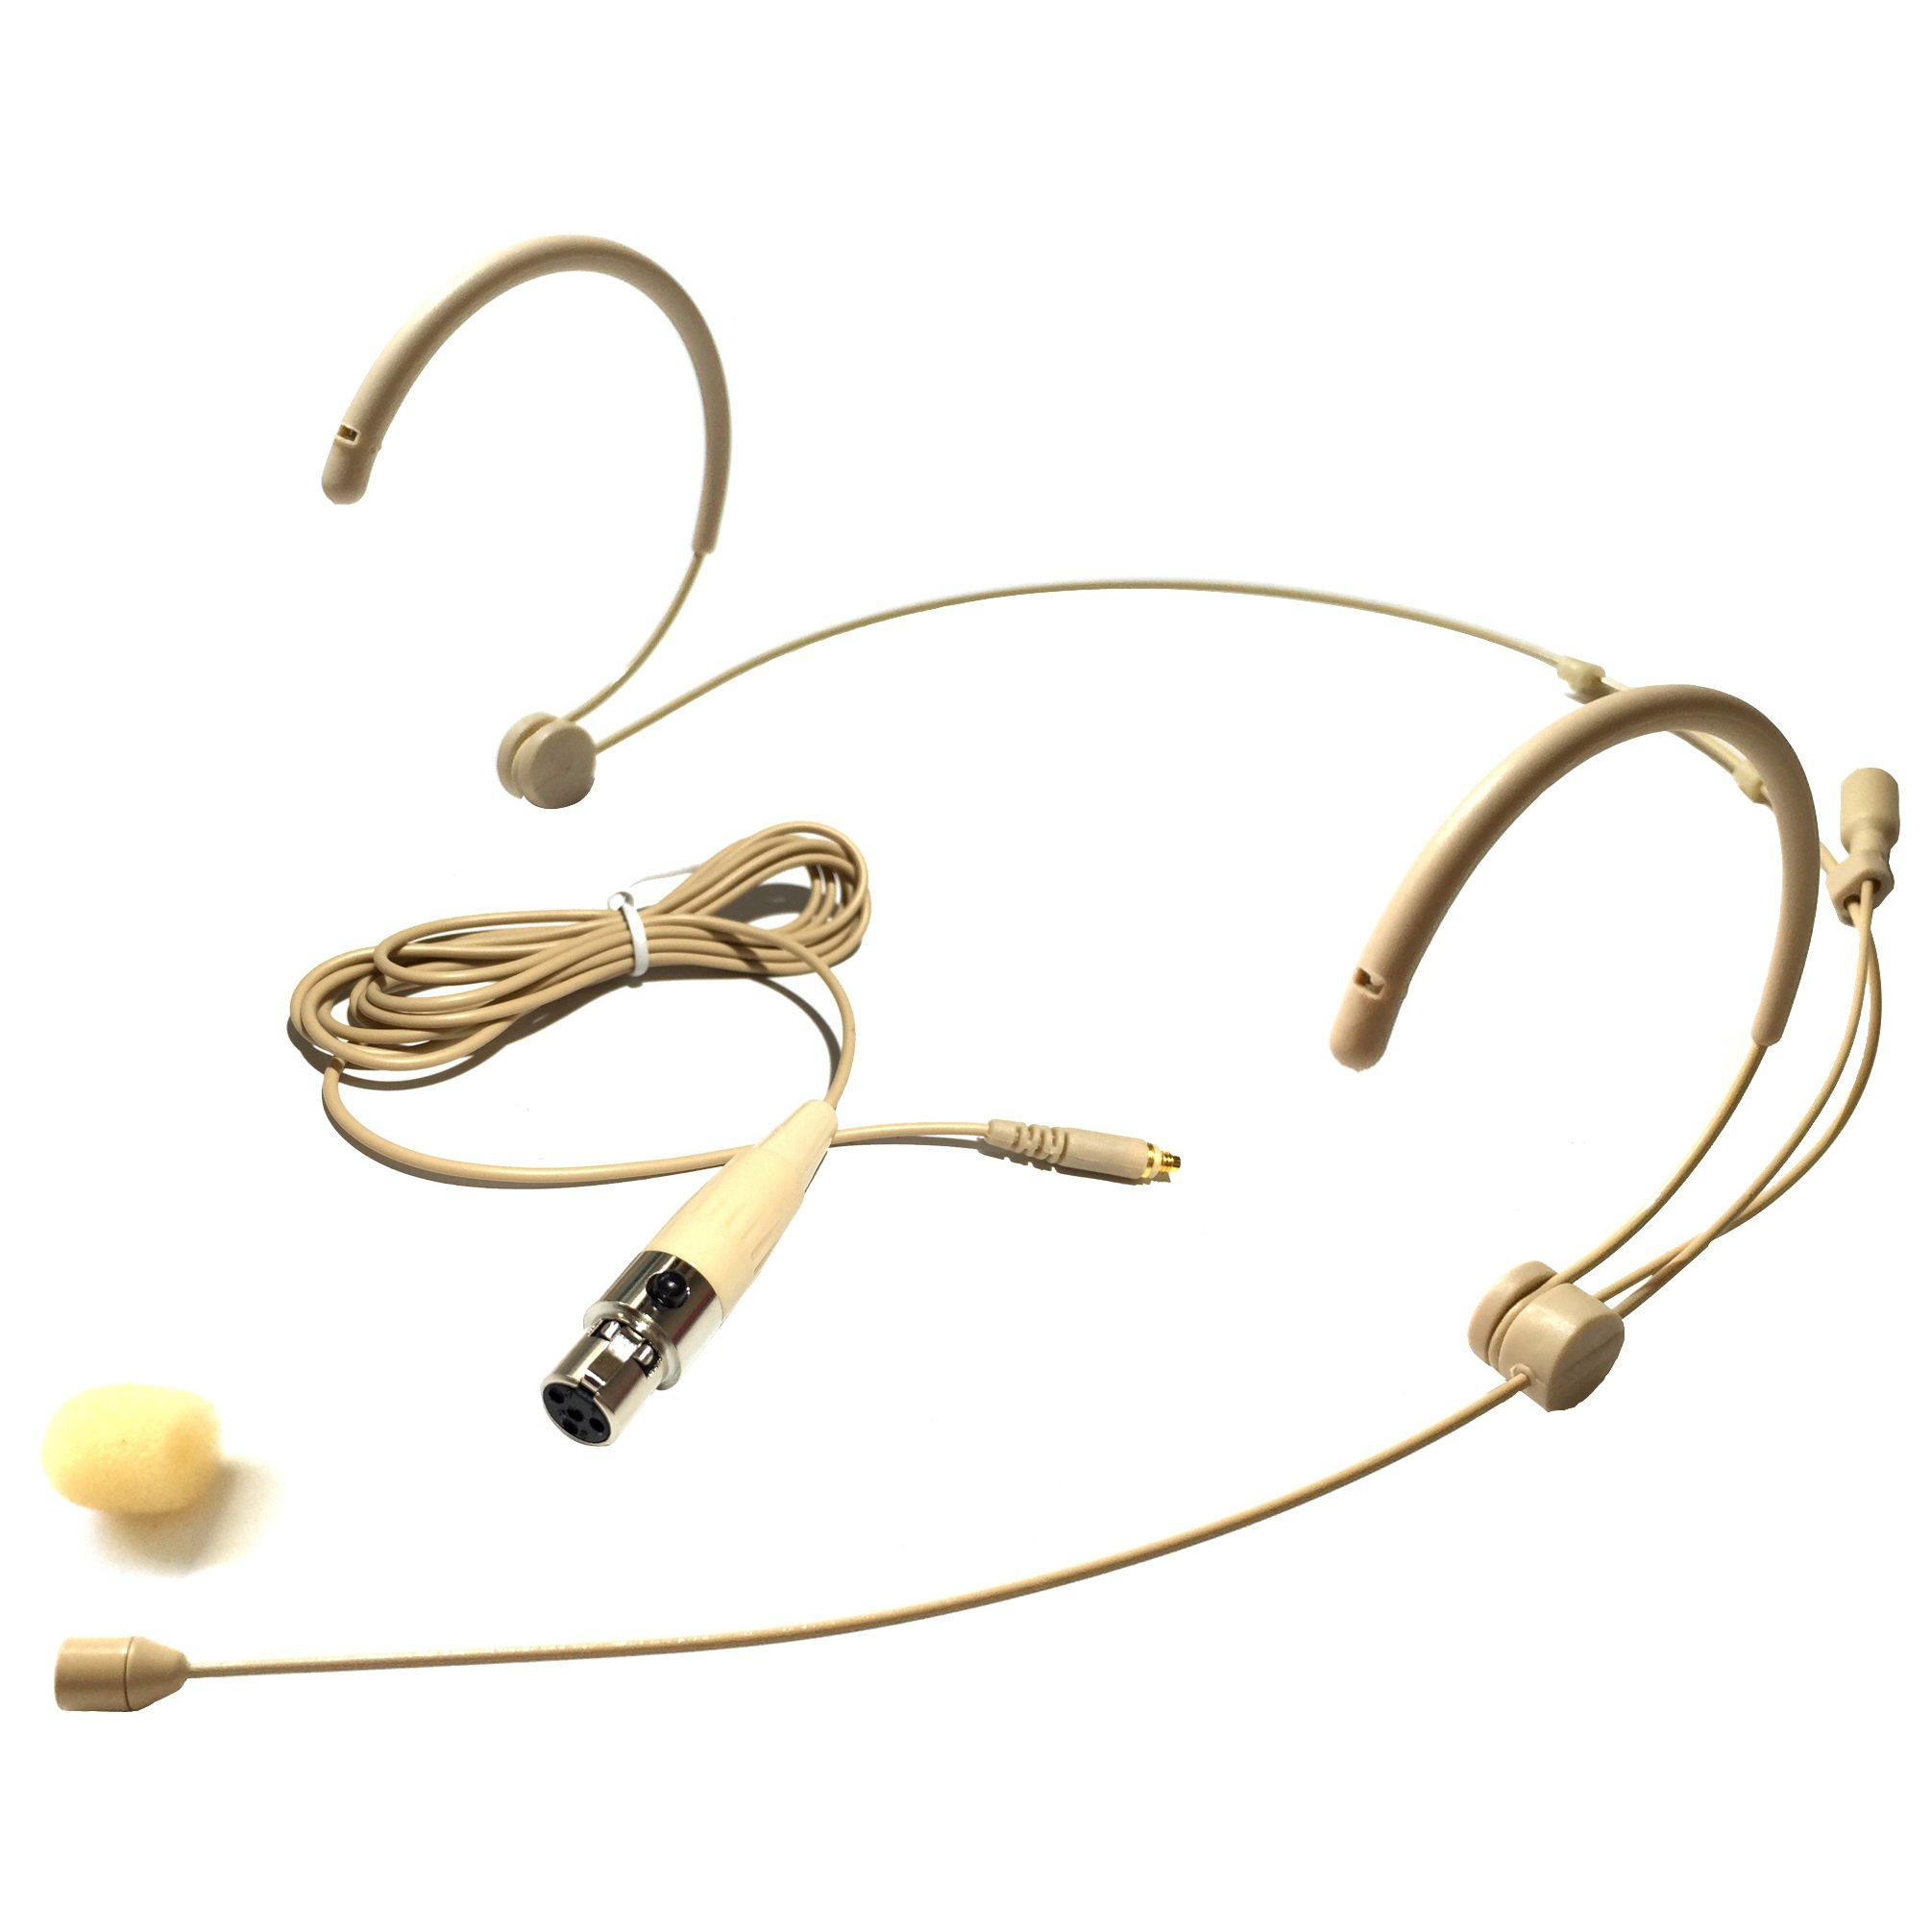 Microdot 4016 Headset Headworn Microphone For SHURE Wireless System - Detachable Cable With Mini XLR Ta4f Connector - Omidirectional Mic by MicroDot